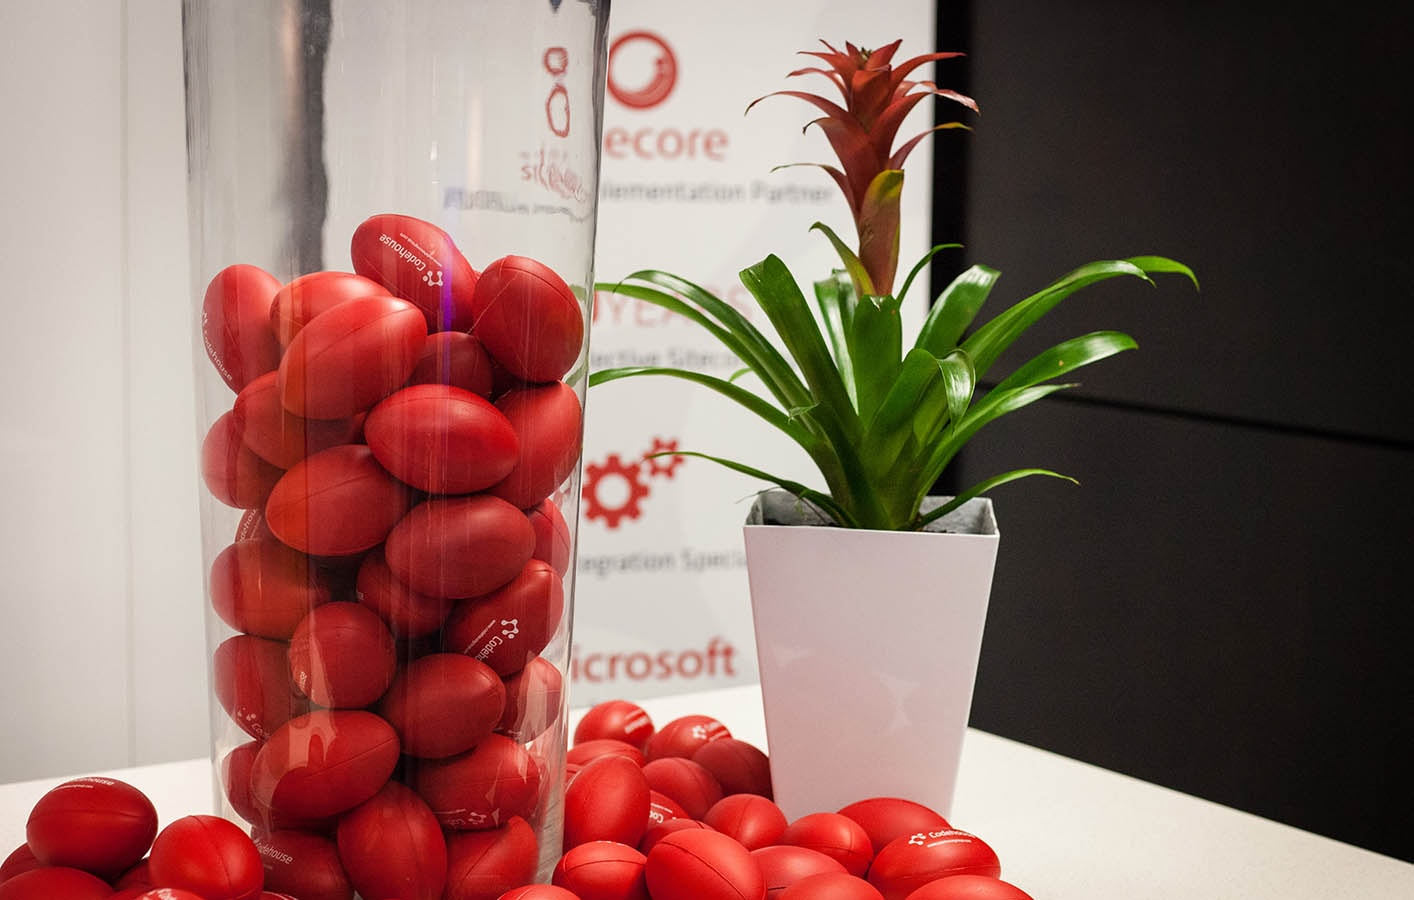 Sitecore partner in London, vase with codehouse balls